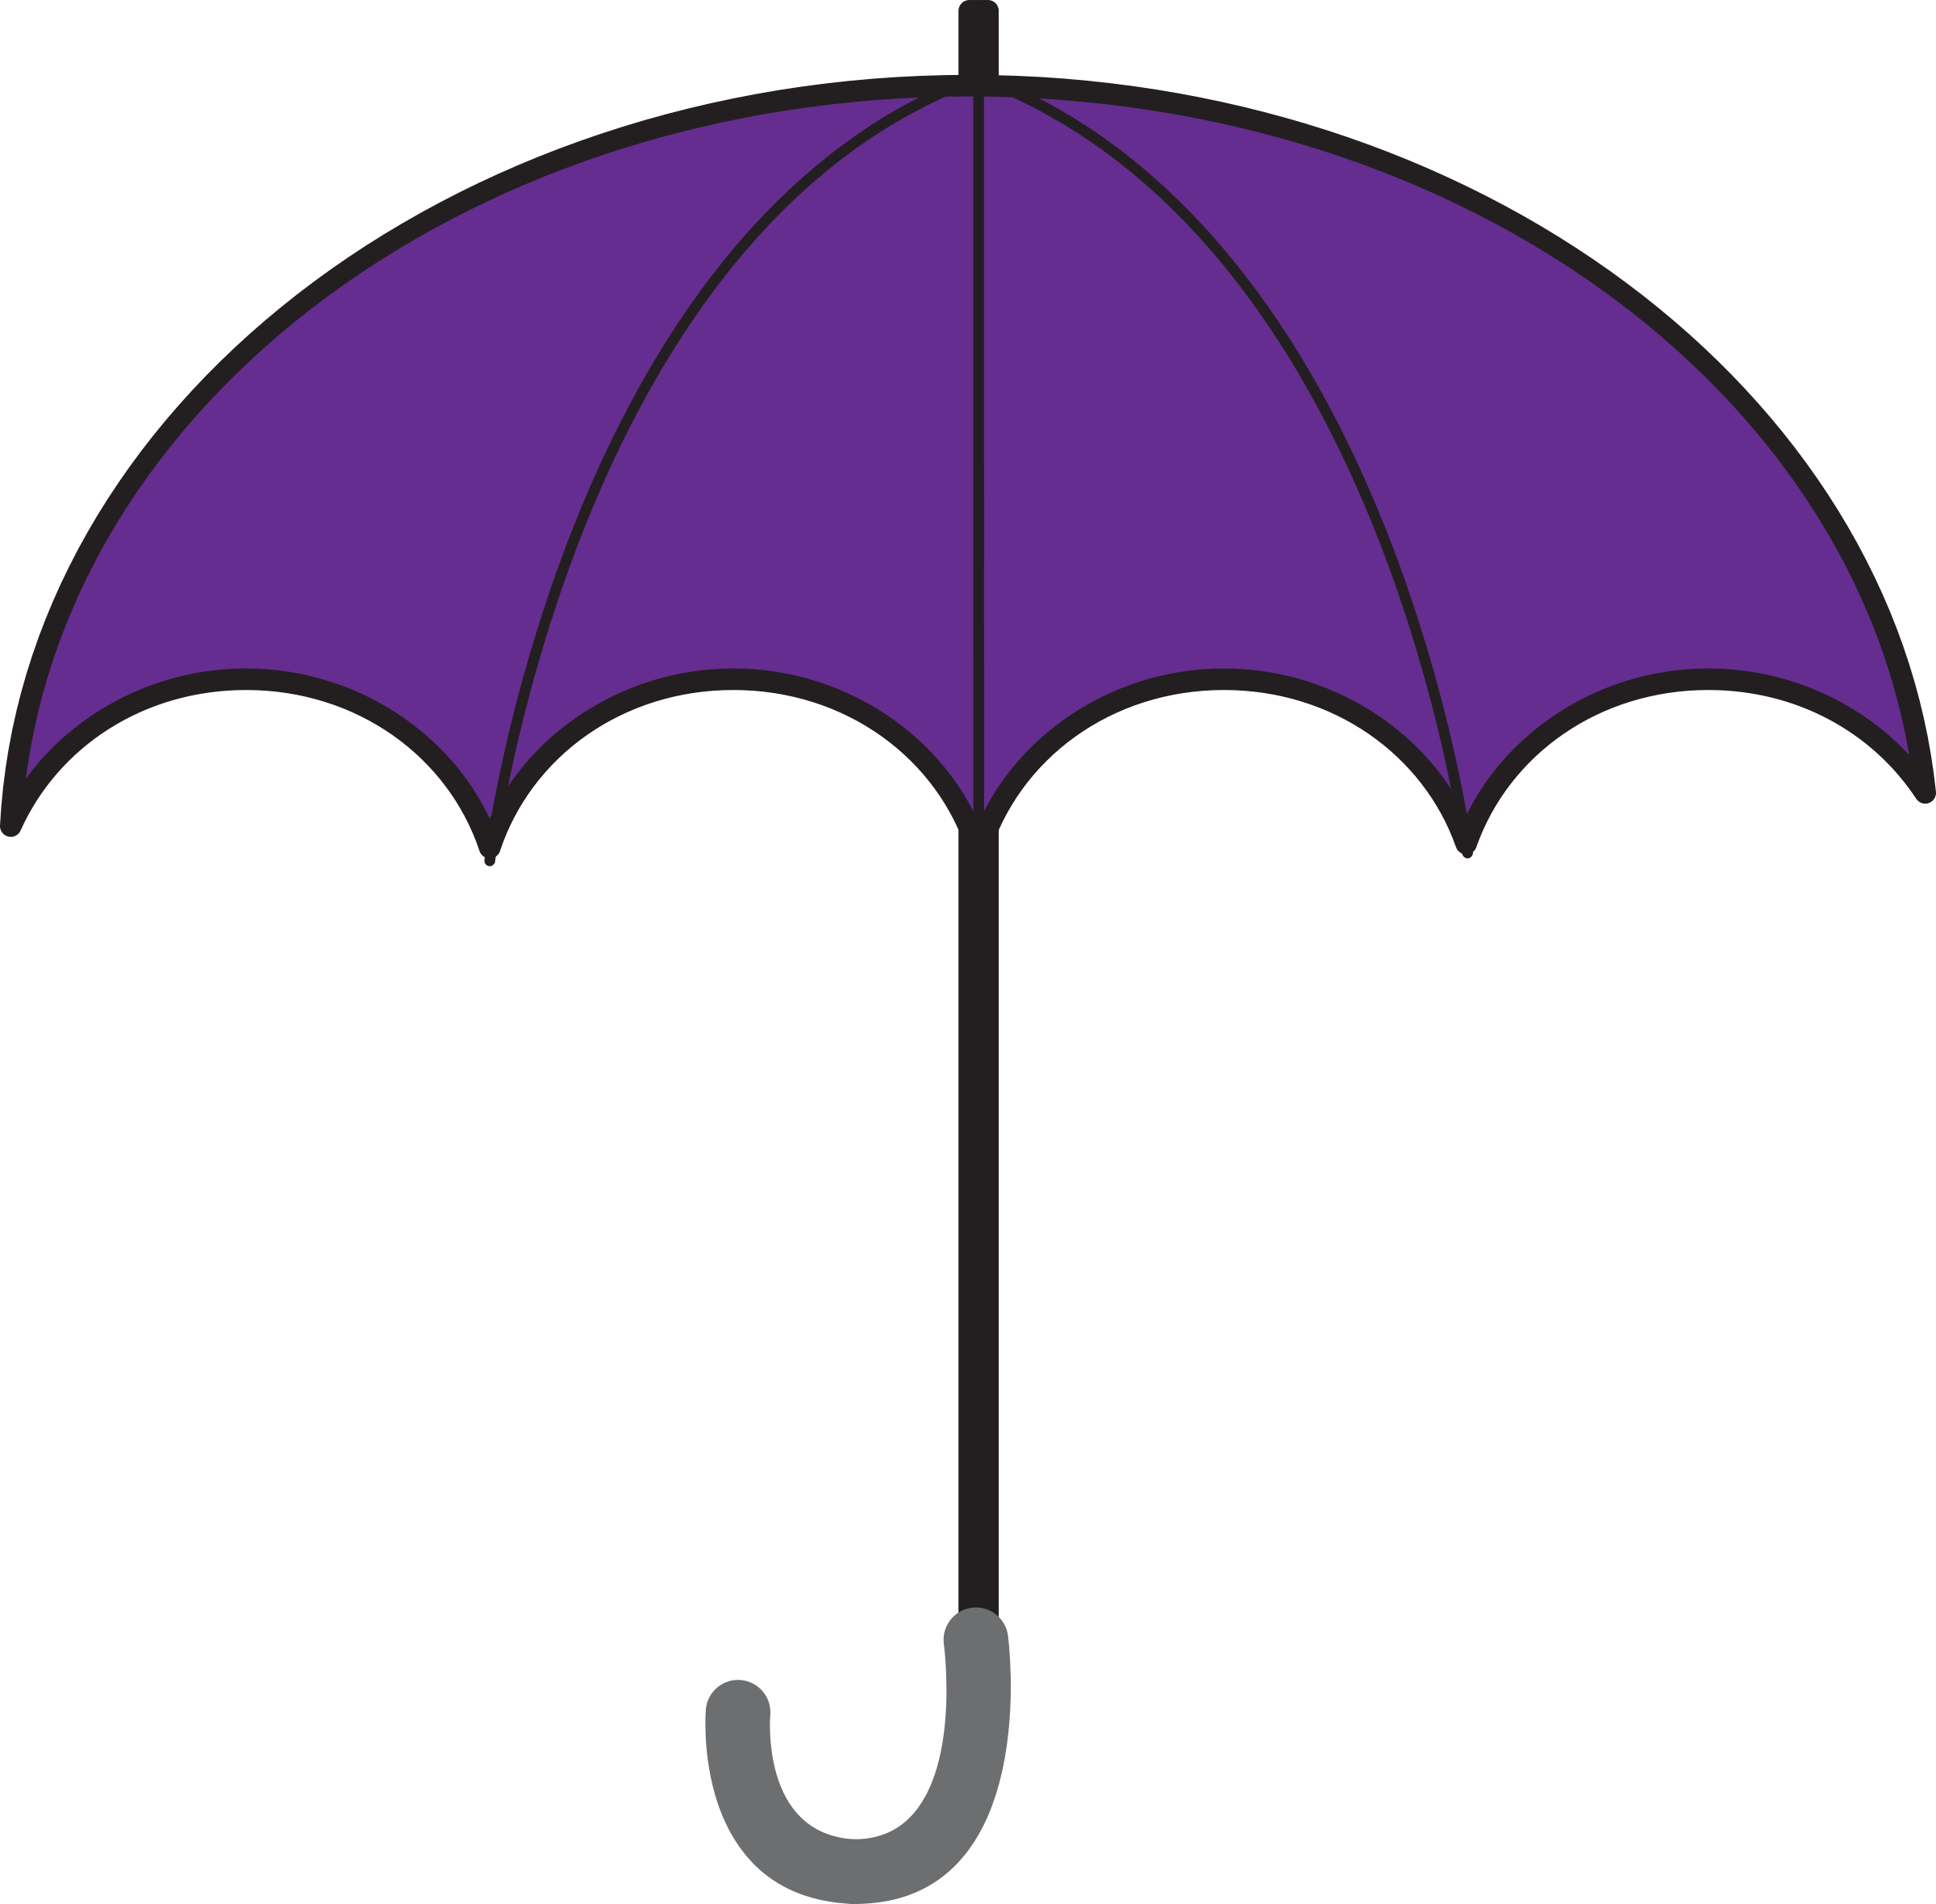 Clipart umbrella clipart freeuse download Clipart - Open Umbrella clipart freeuse download